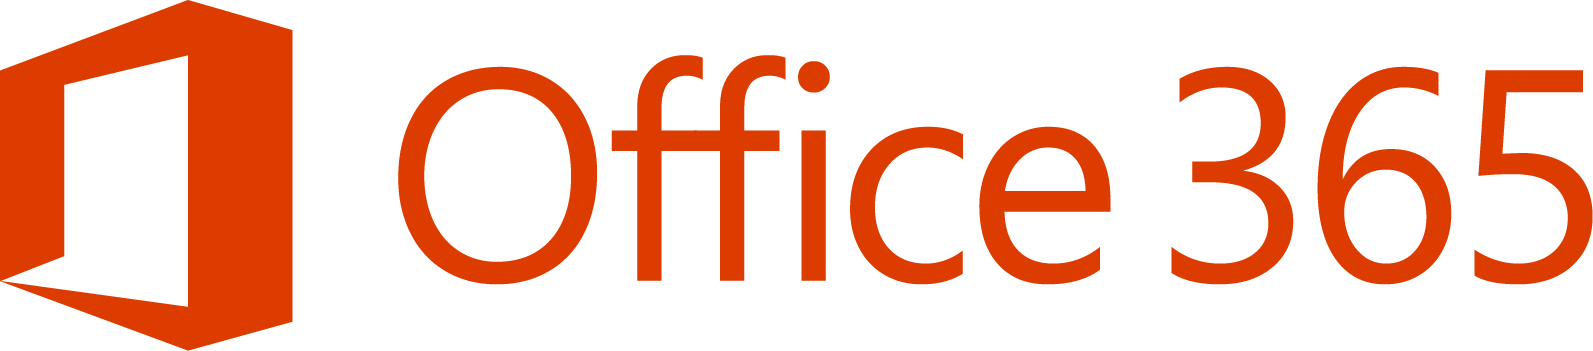 office365_logo.png